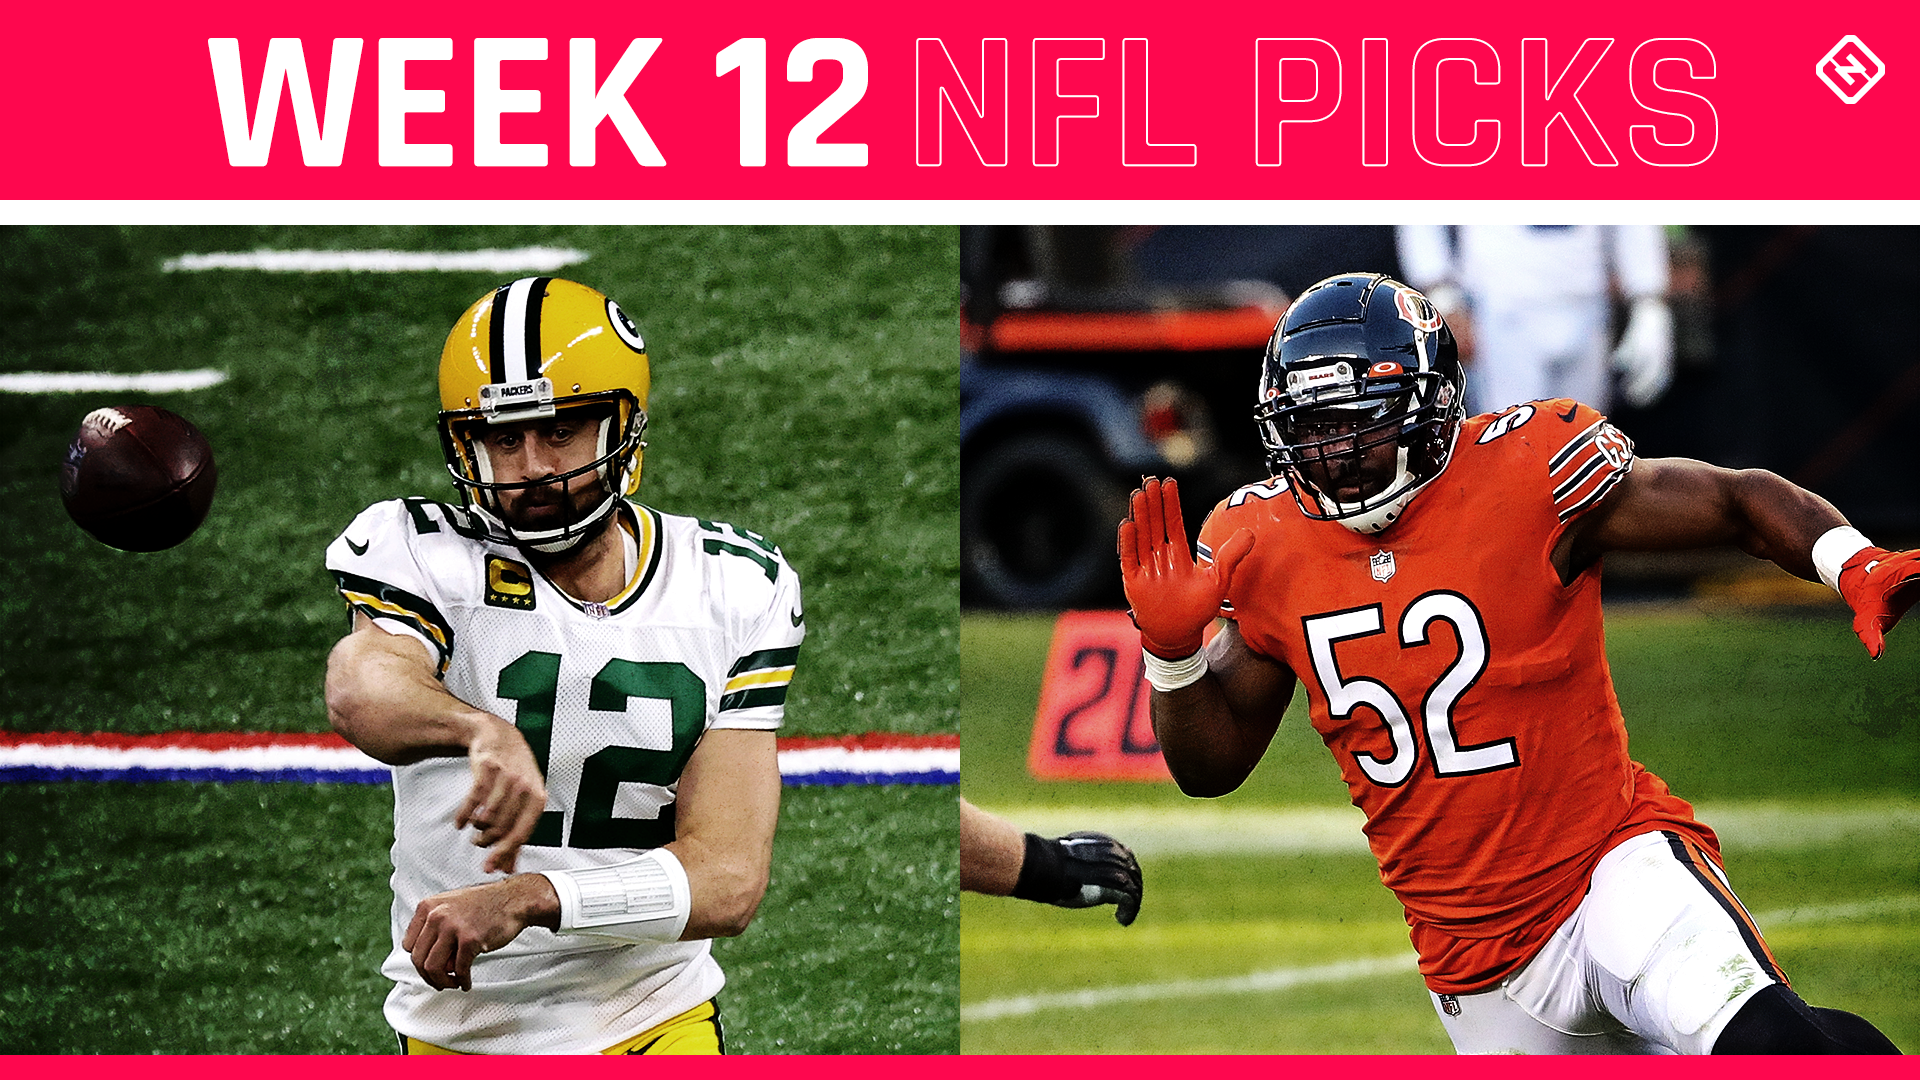 NFL expert picks, predictions for Week 12 straight up